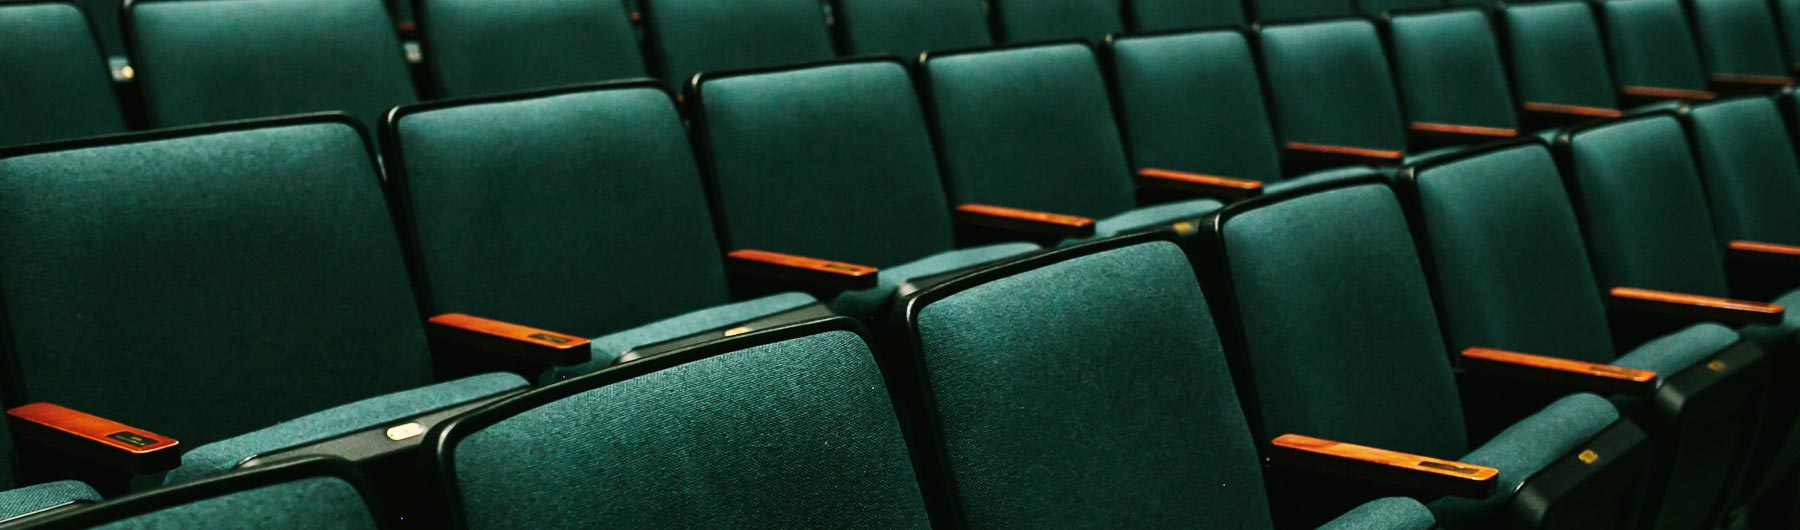 row of seats at the theatre